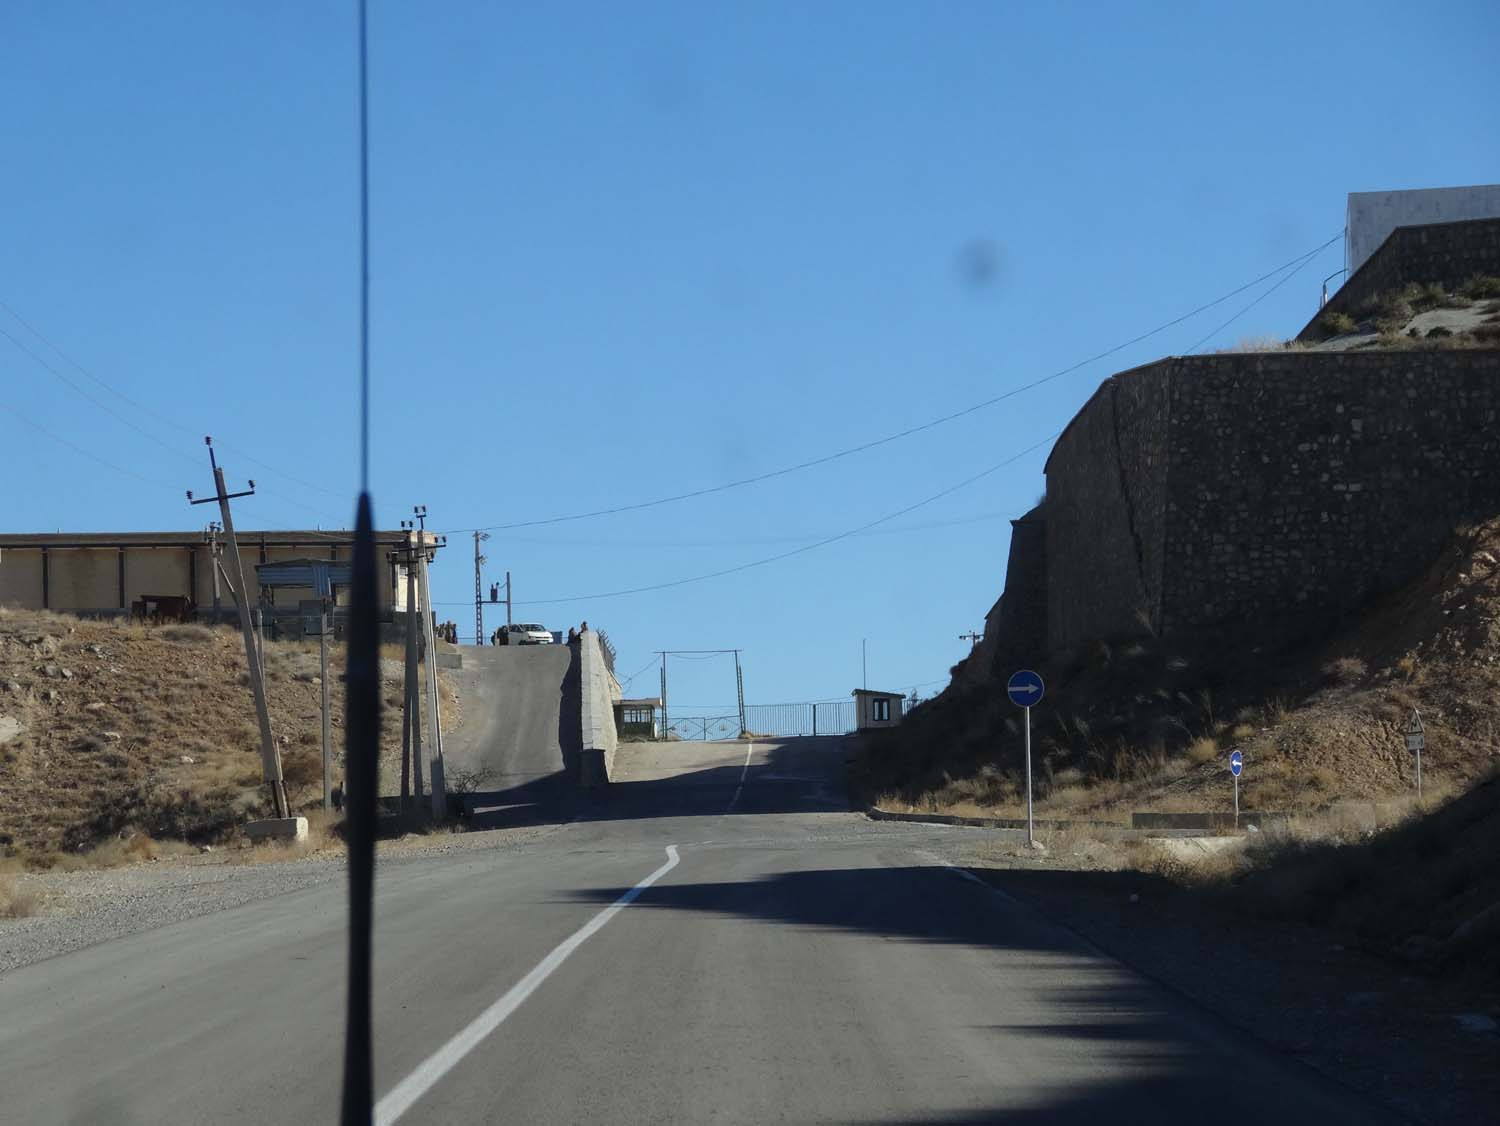 turn sharply right up the hill for the border posts (both Turkmenistan and Iran)